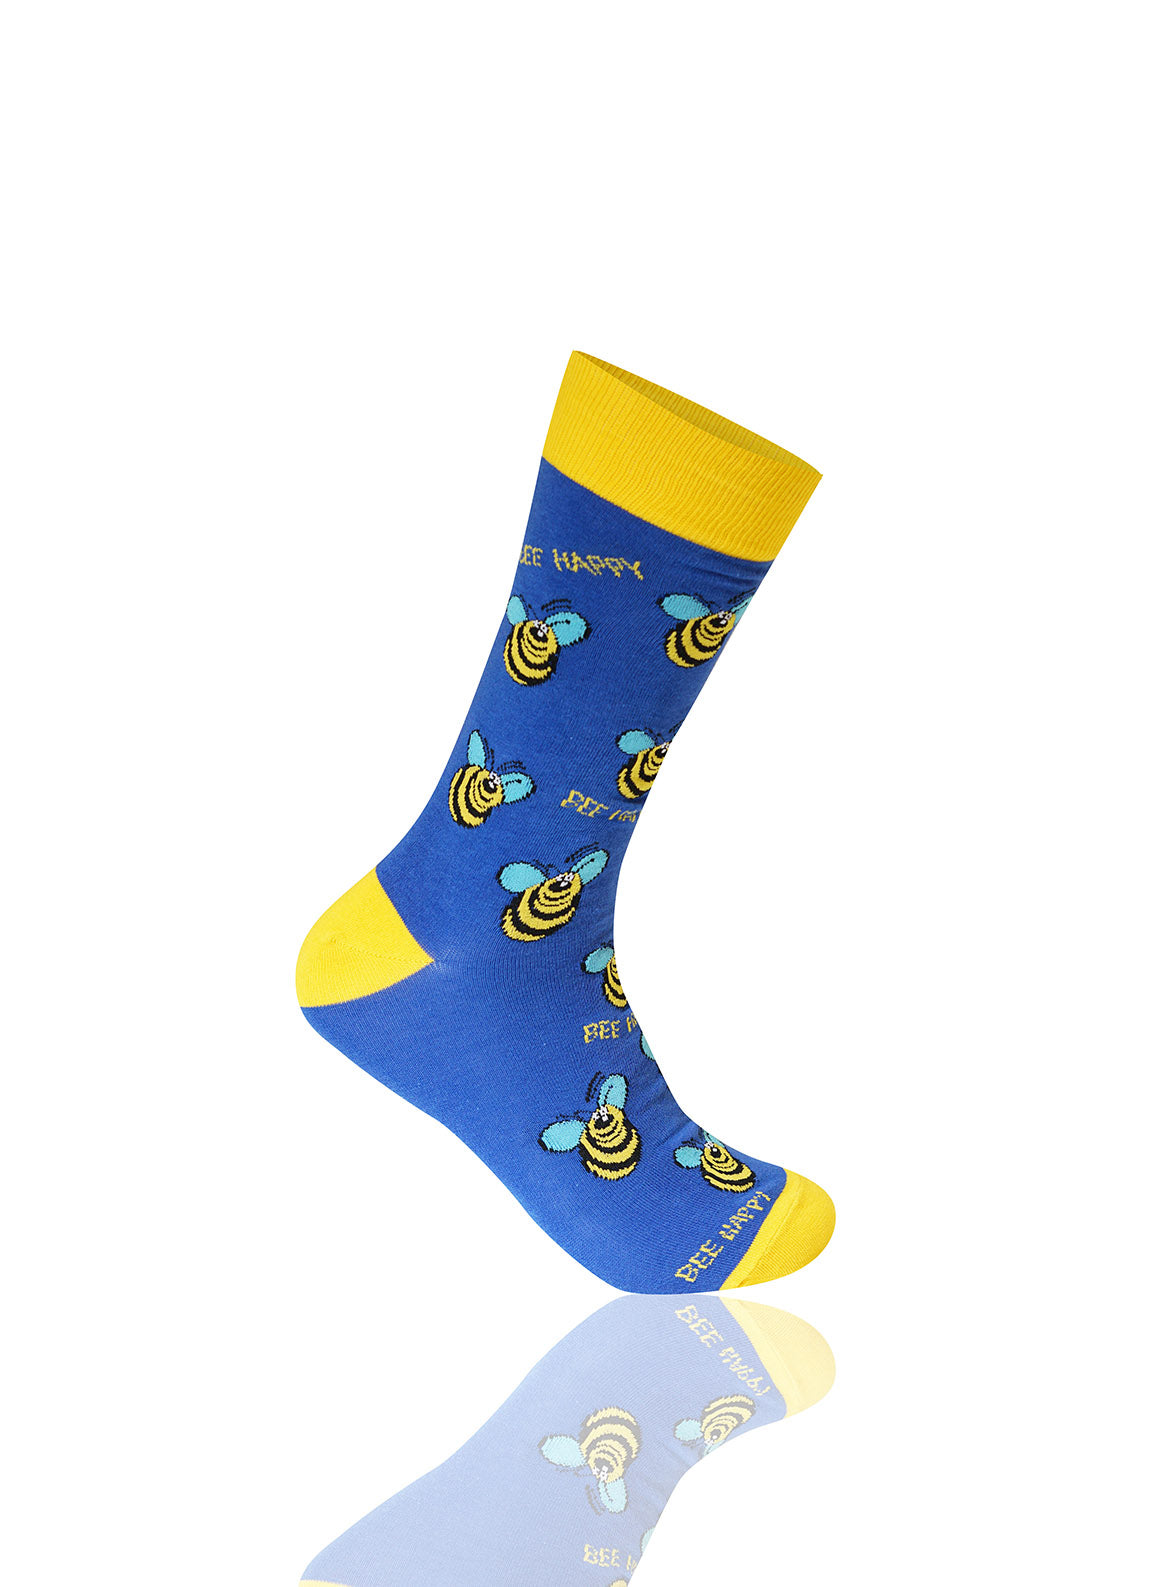 BLUE Bee Happy Novelty Socks - URBANCREWS